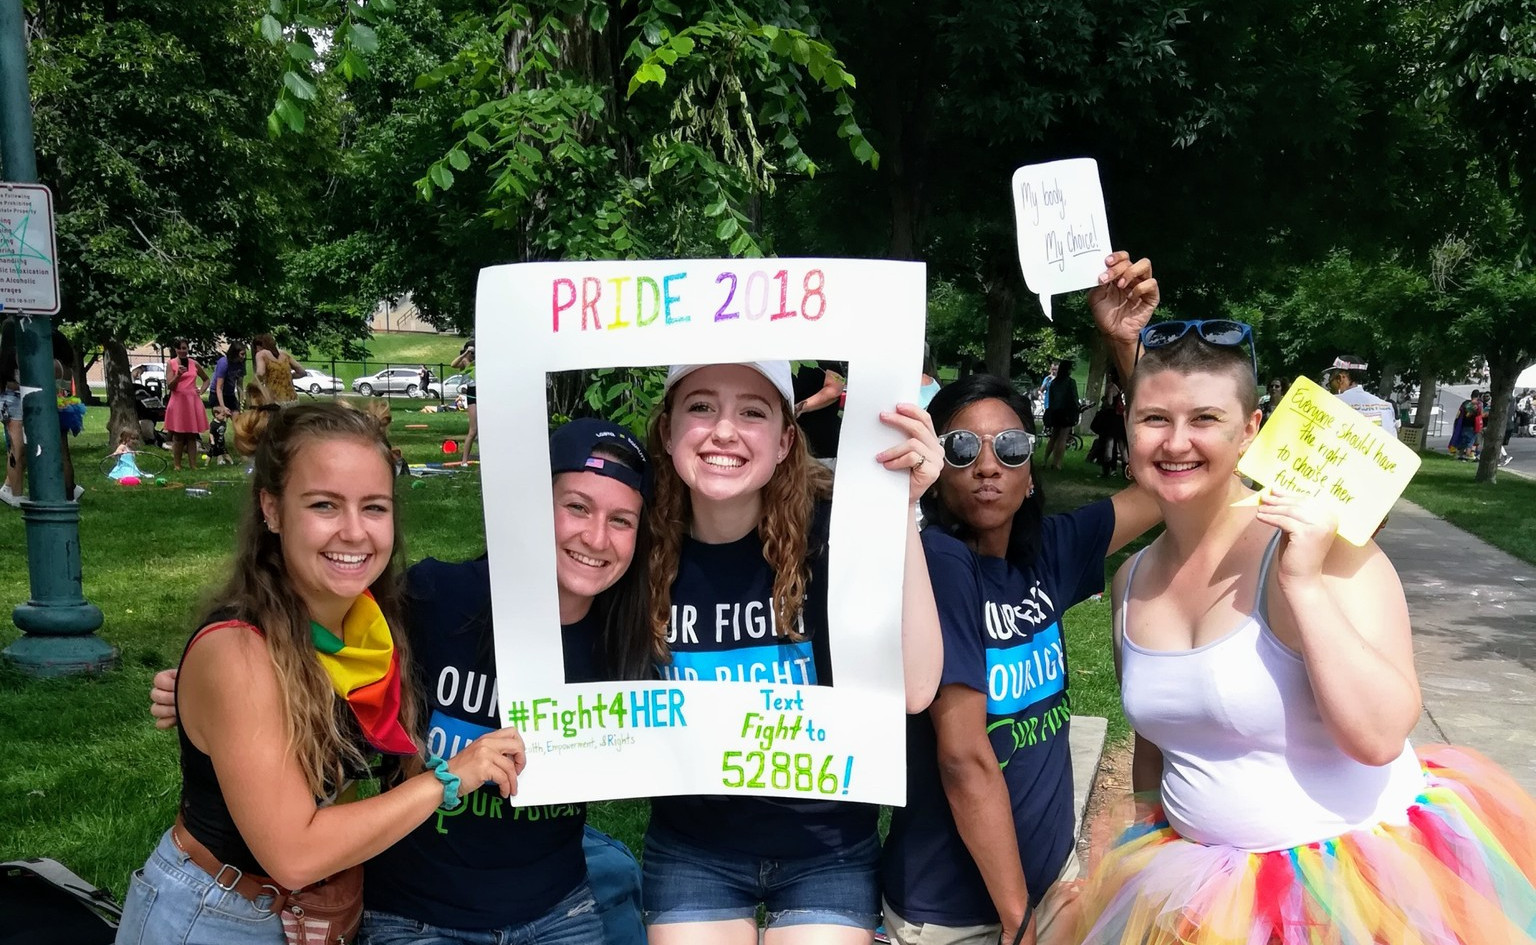 06.17.18.CO.PridePhotoPetition.jpg